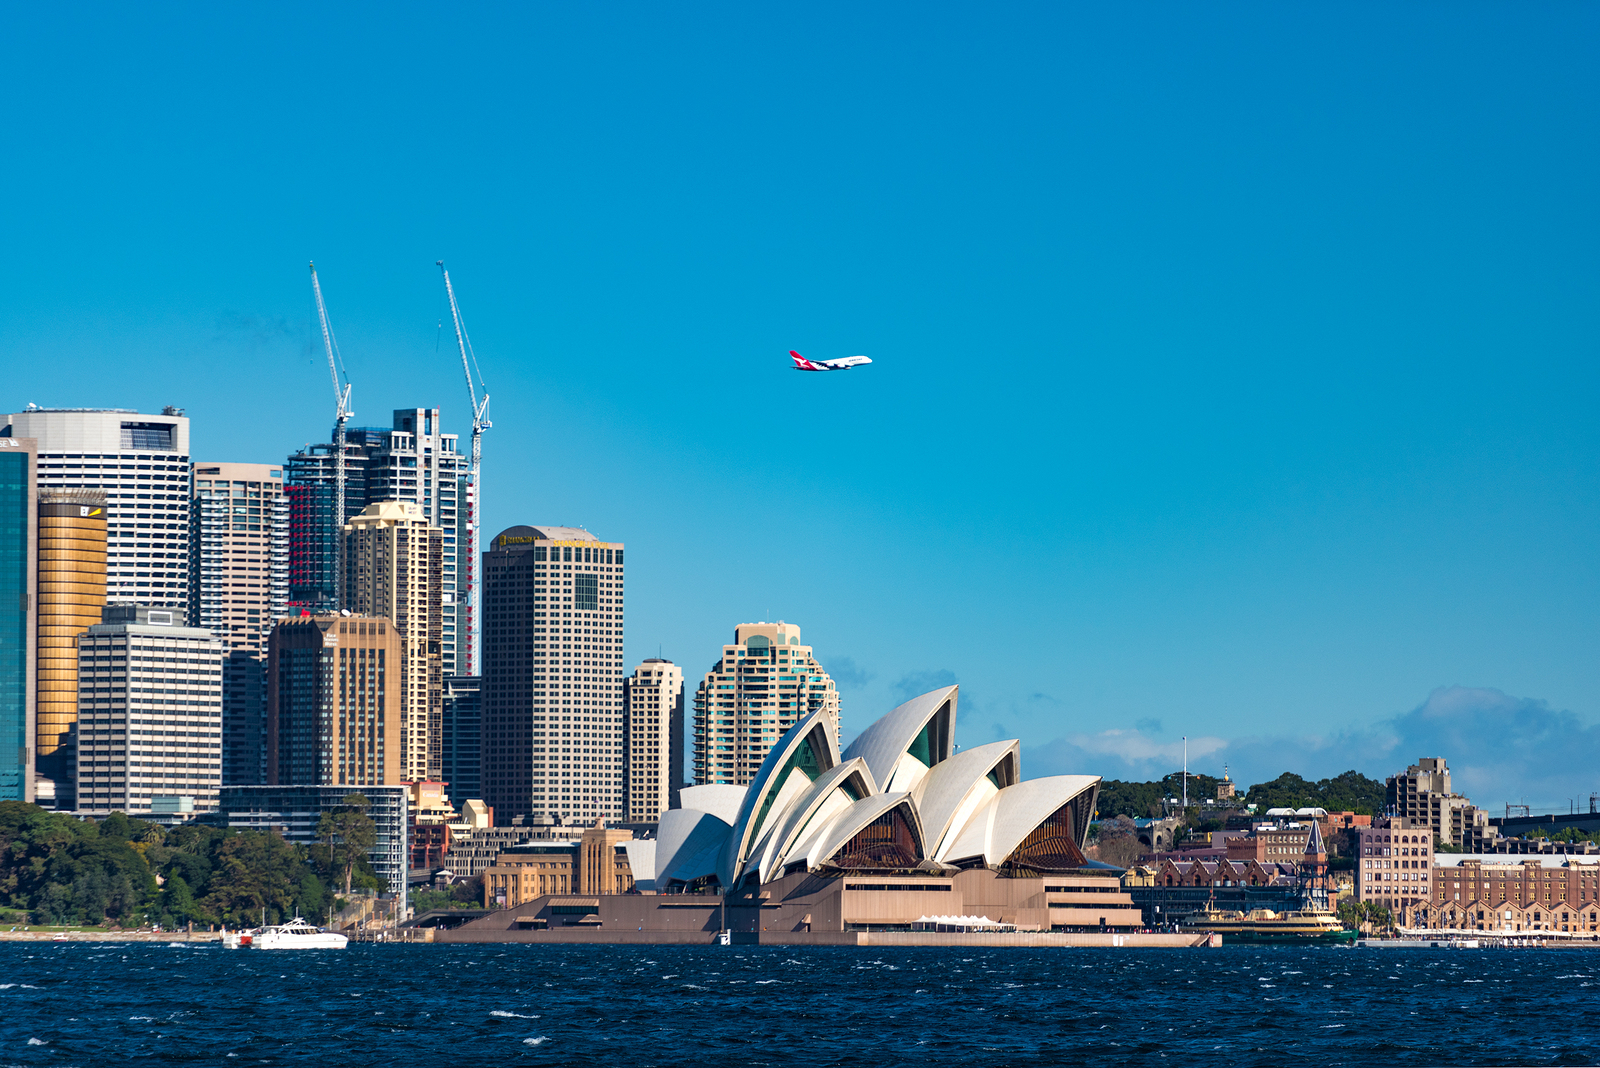 Sydney Australia - July 23 2016: Sydney Opera House and Central Business District with Qantas plane against blue sky on the background. Qantas is Australia's largest airline and the flag carrier